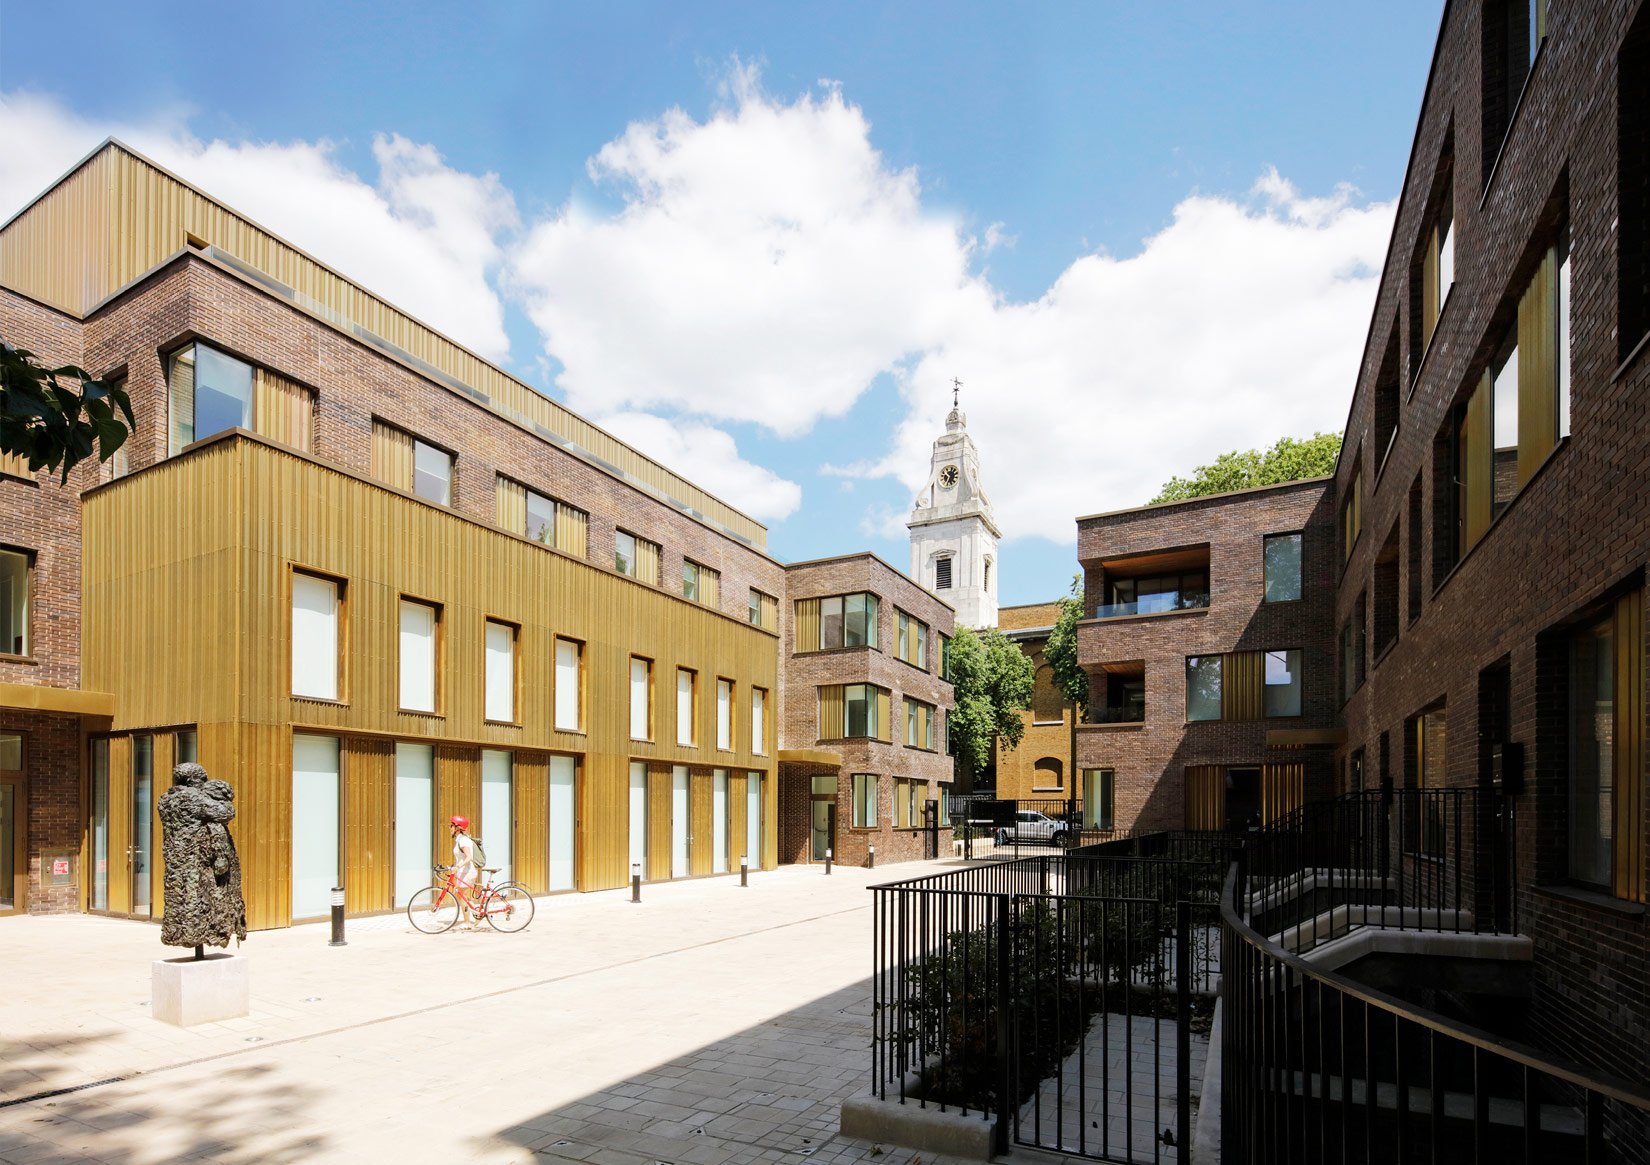 Hackney Gardens, Courtyard and Church in the background